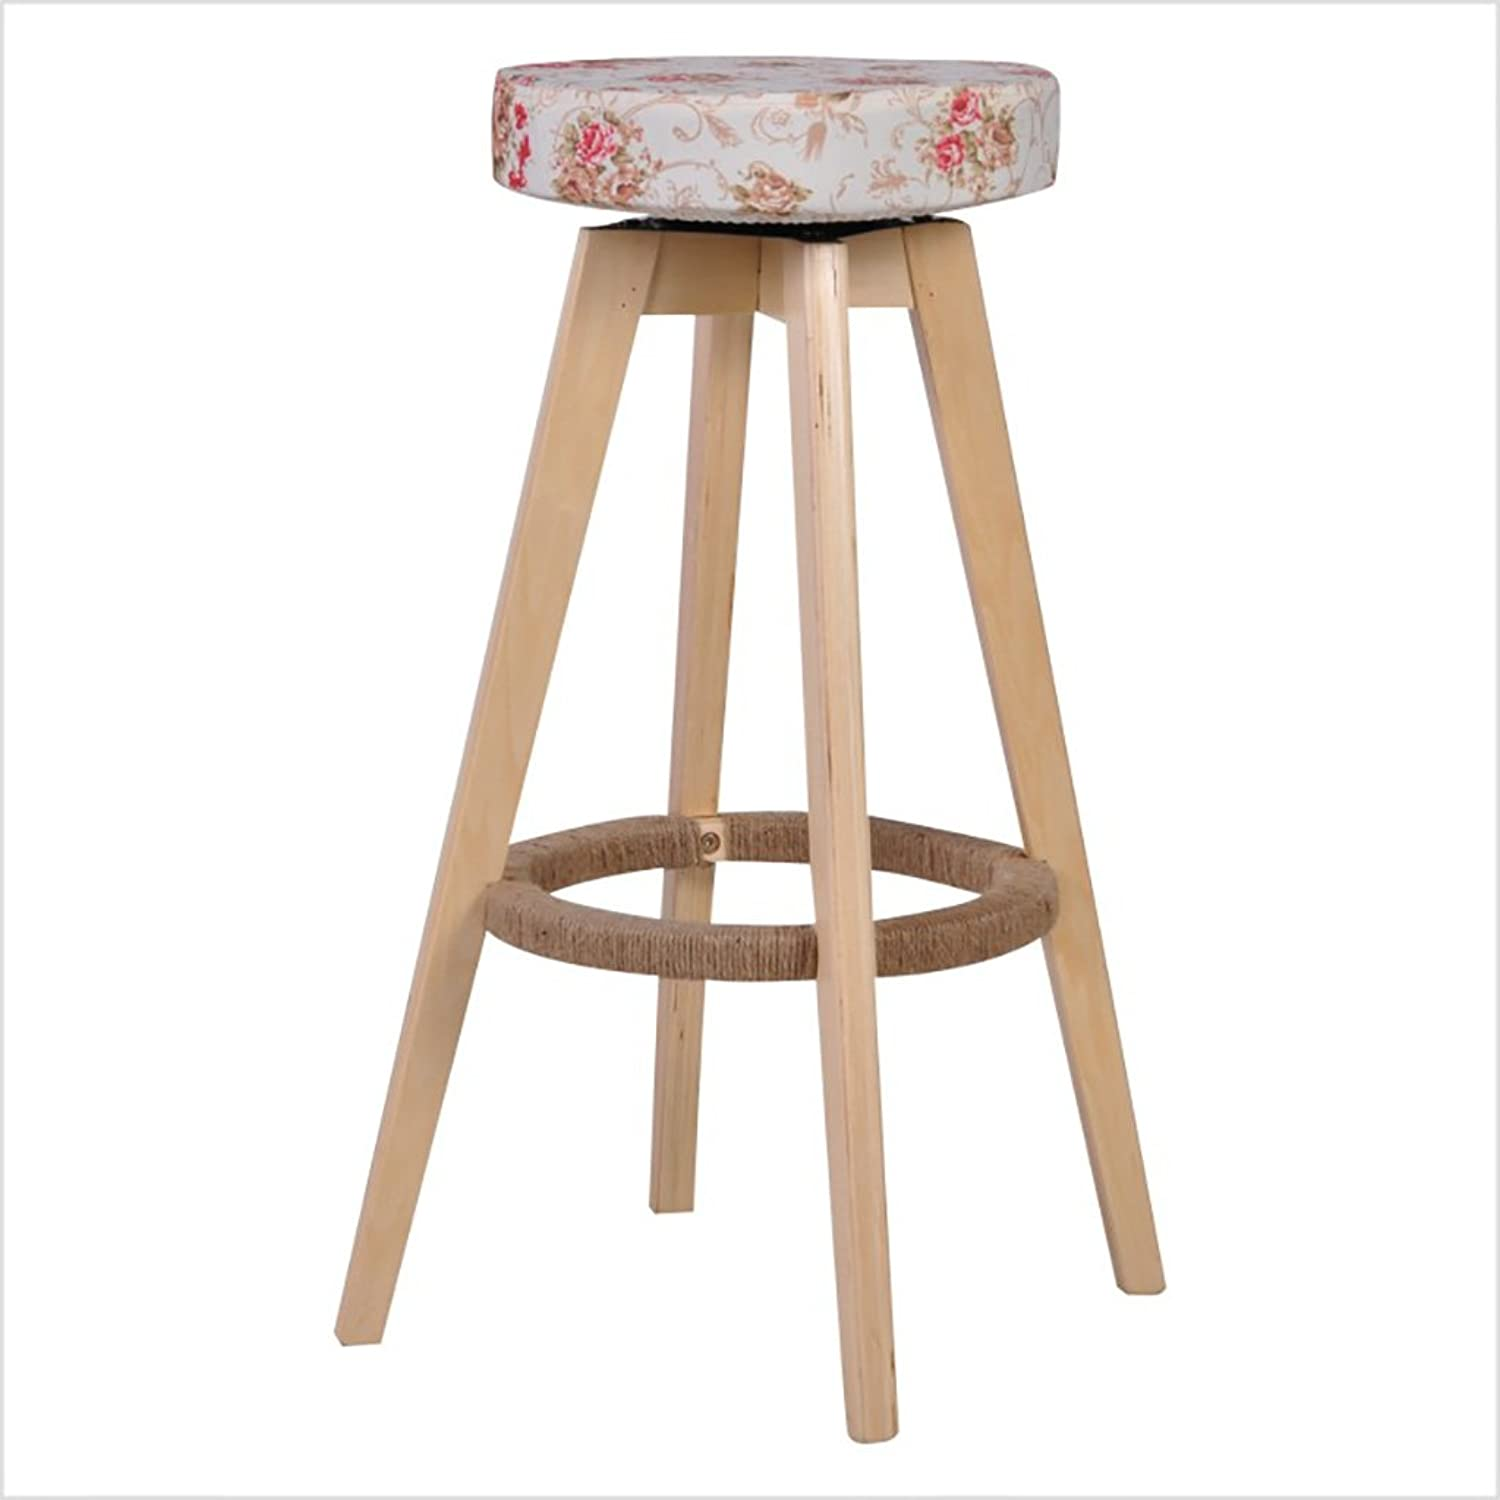 Solid Wood Bar Stools High Chair Stools Simple Home Bar Stools Swivel Stools European Soft Knitted Fabric Bar Stools High Stools